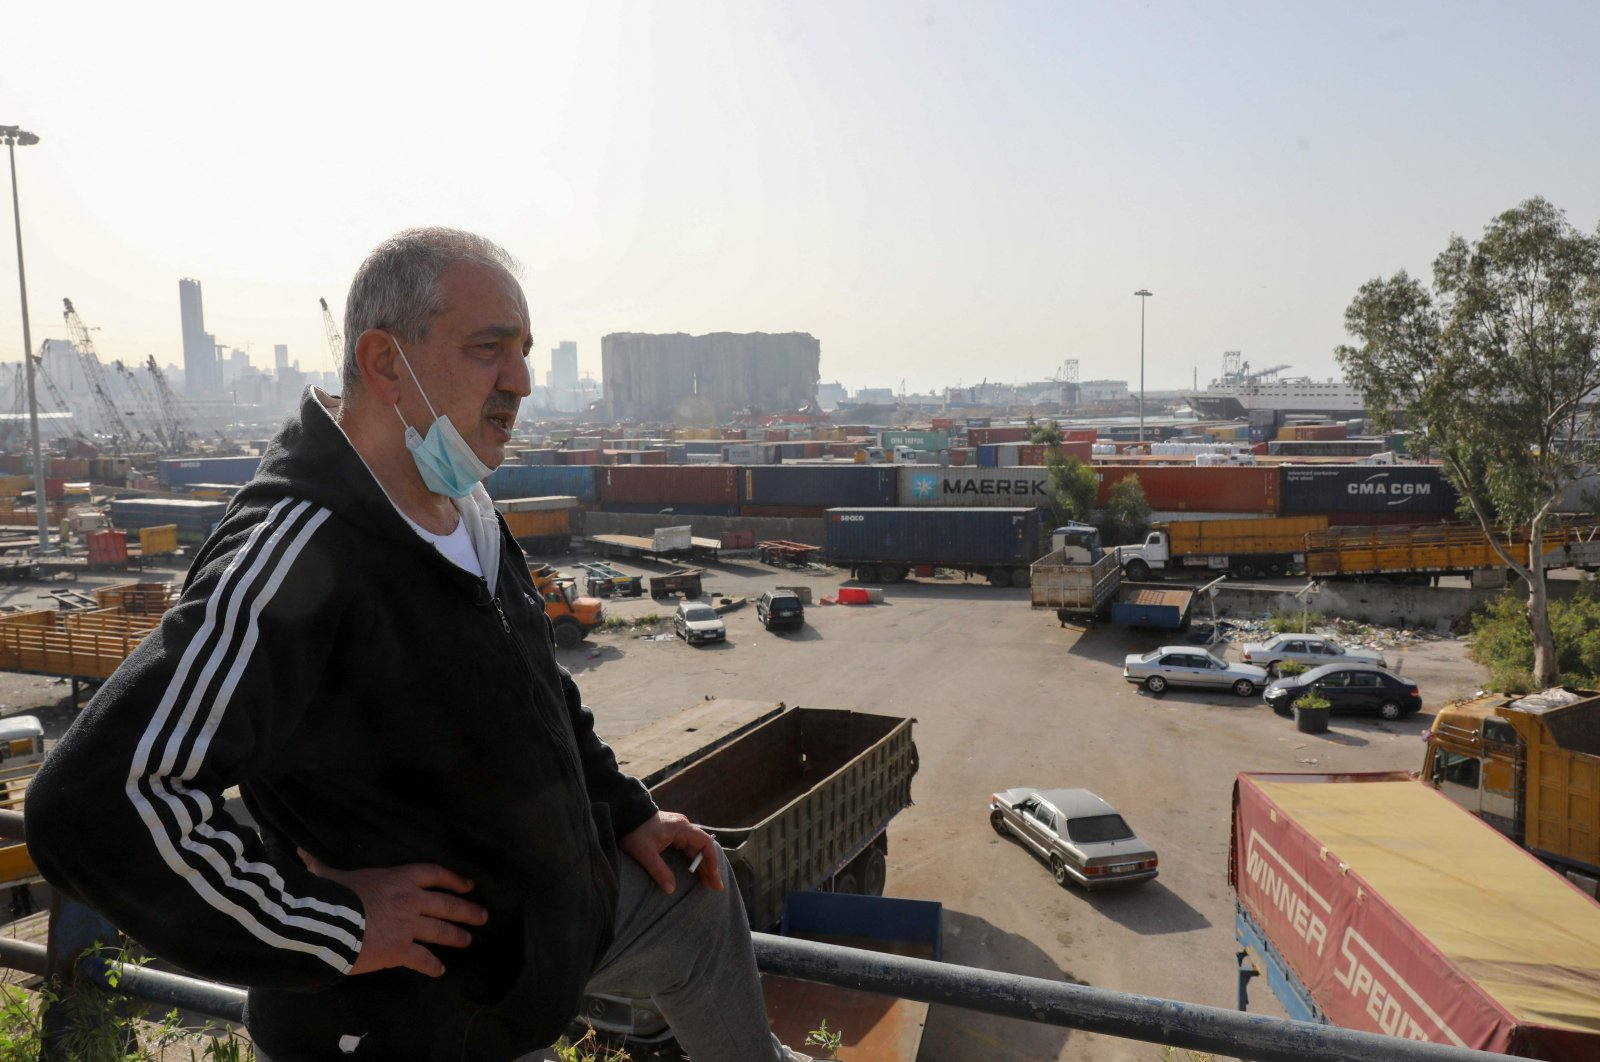 Civil war survivor Jean Saliba is pictured on a balcony overlooking the port of Beirut, in the Karantina district of the Lebanese capital, Lebanon, April 6, 2021. (AFP Photo)